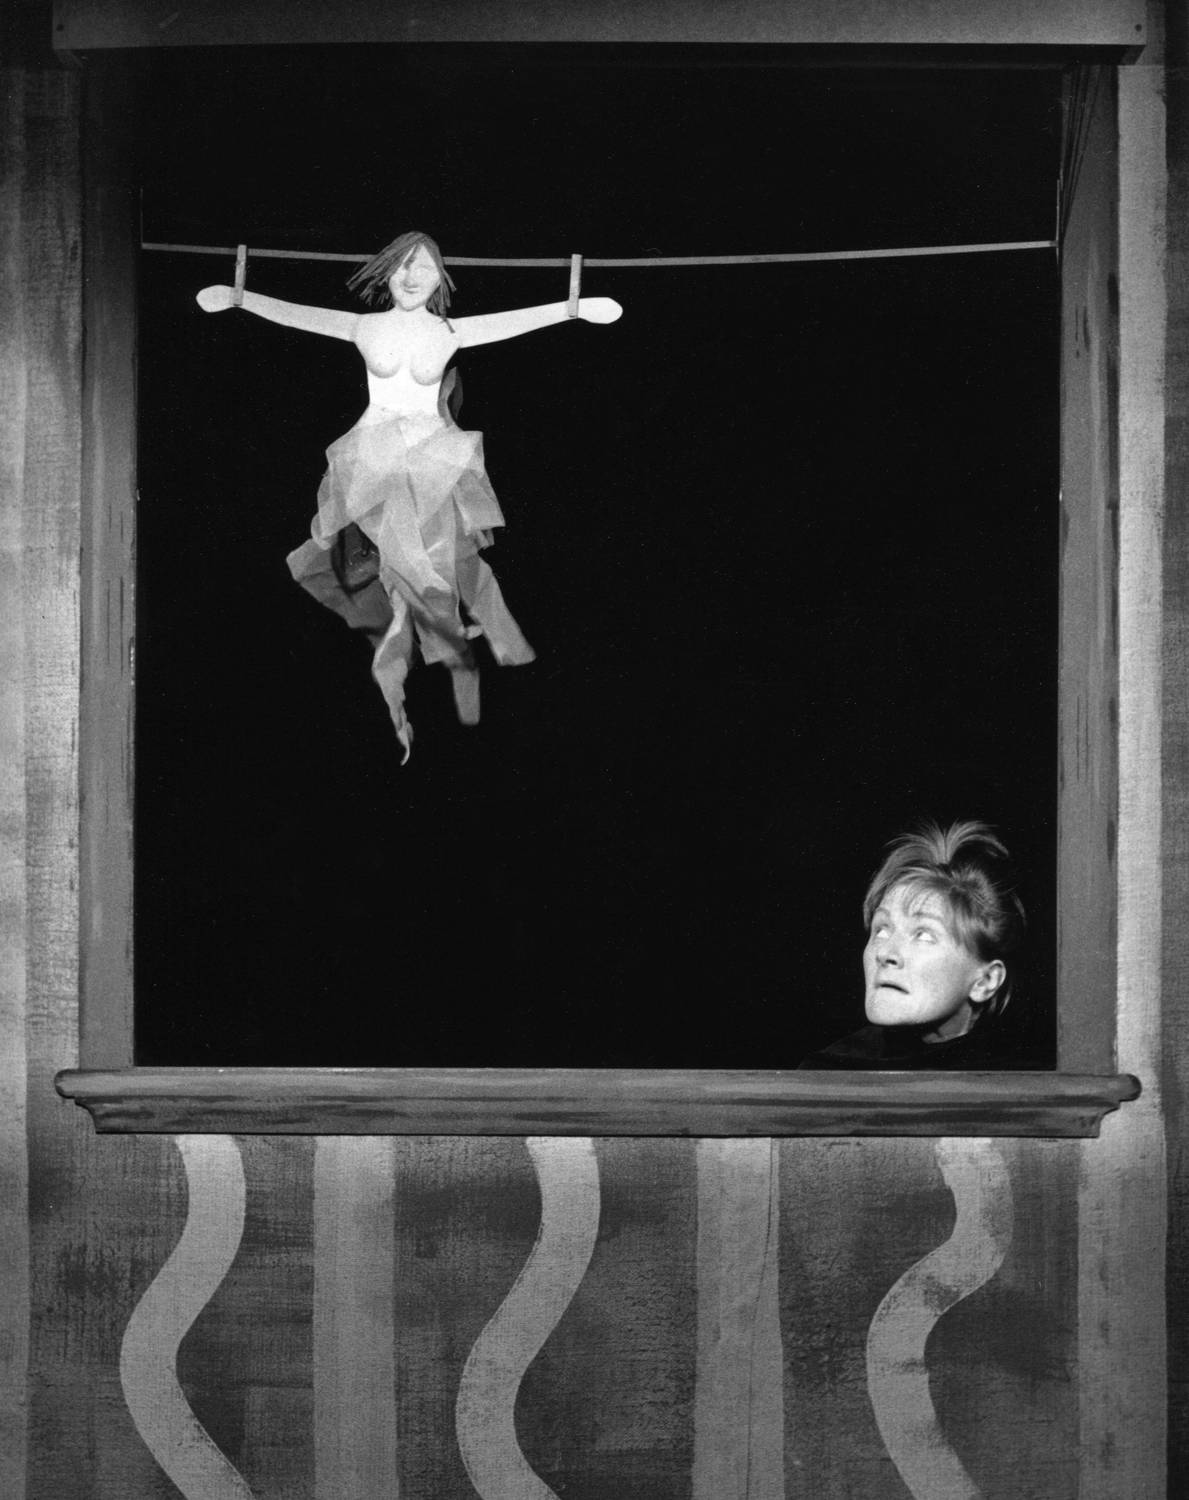 woman's face looking up front the bottom of a booth opening at a fairy figure hanging in the air